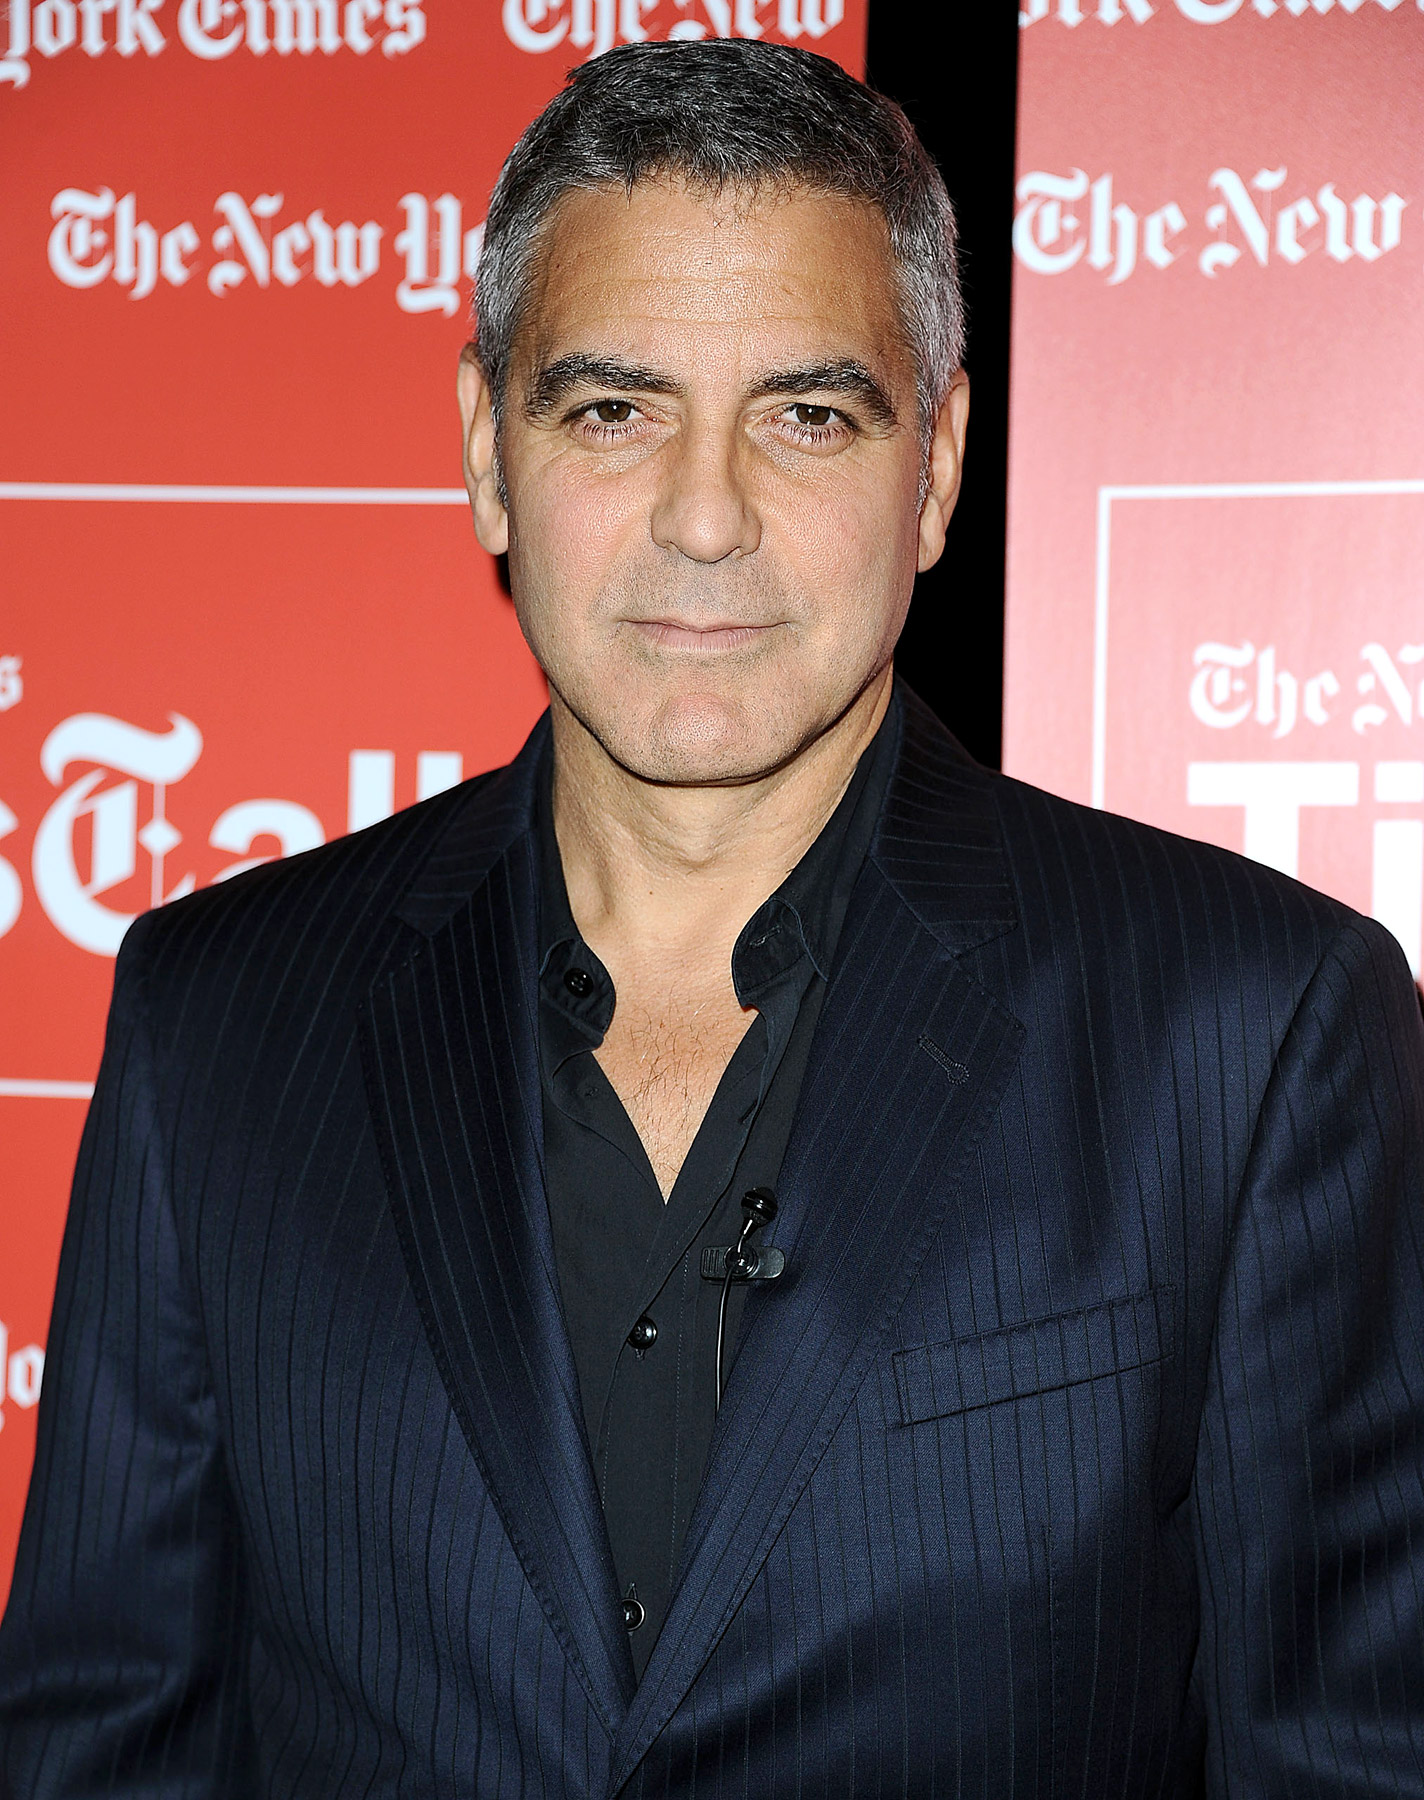 Clooney's too cool for coke!